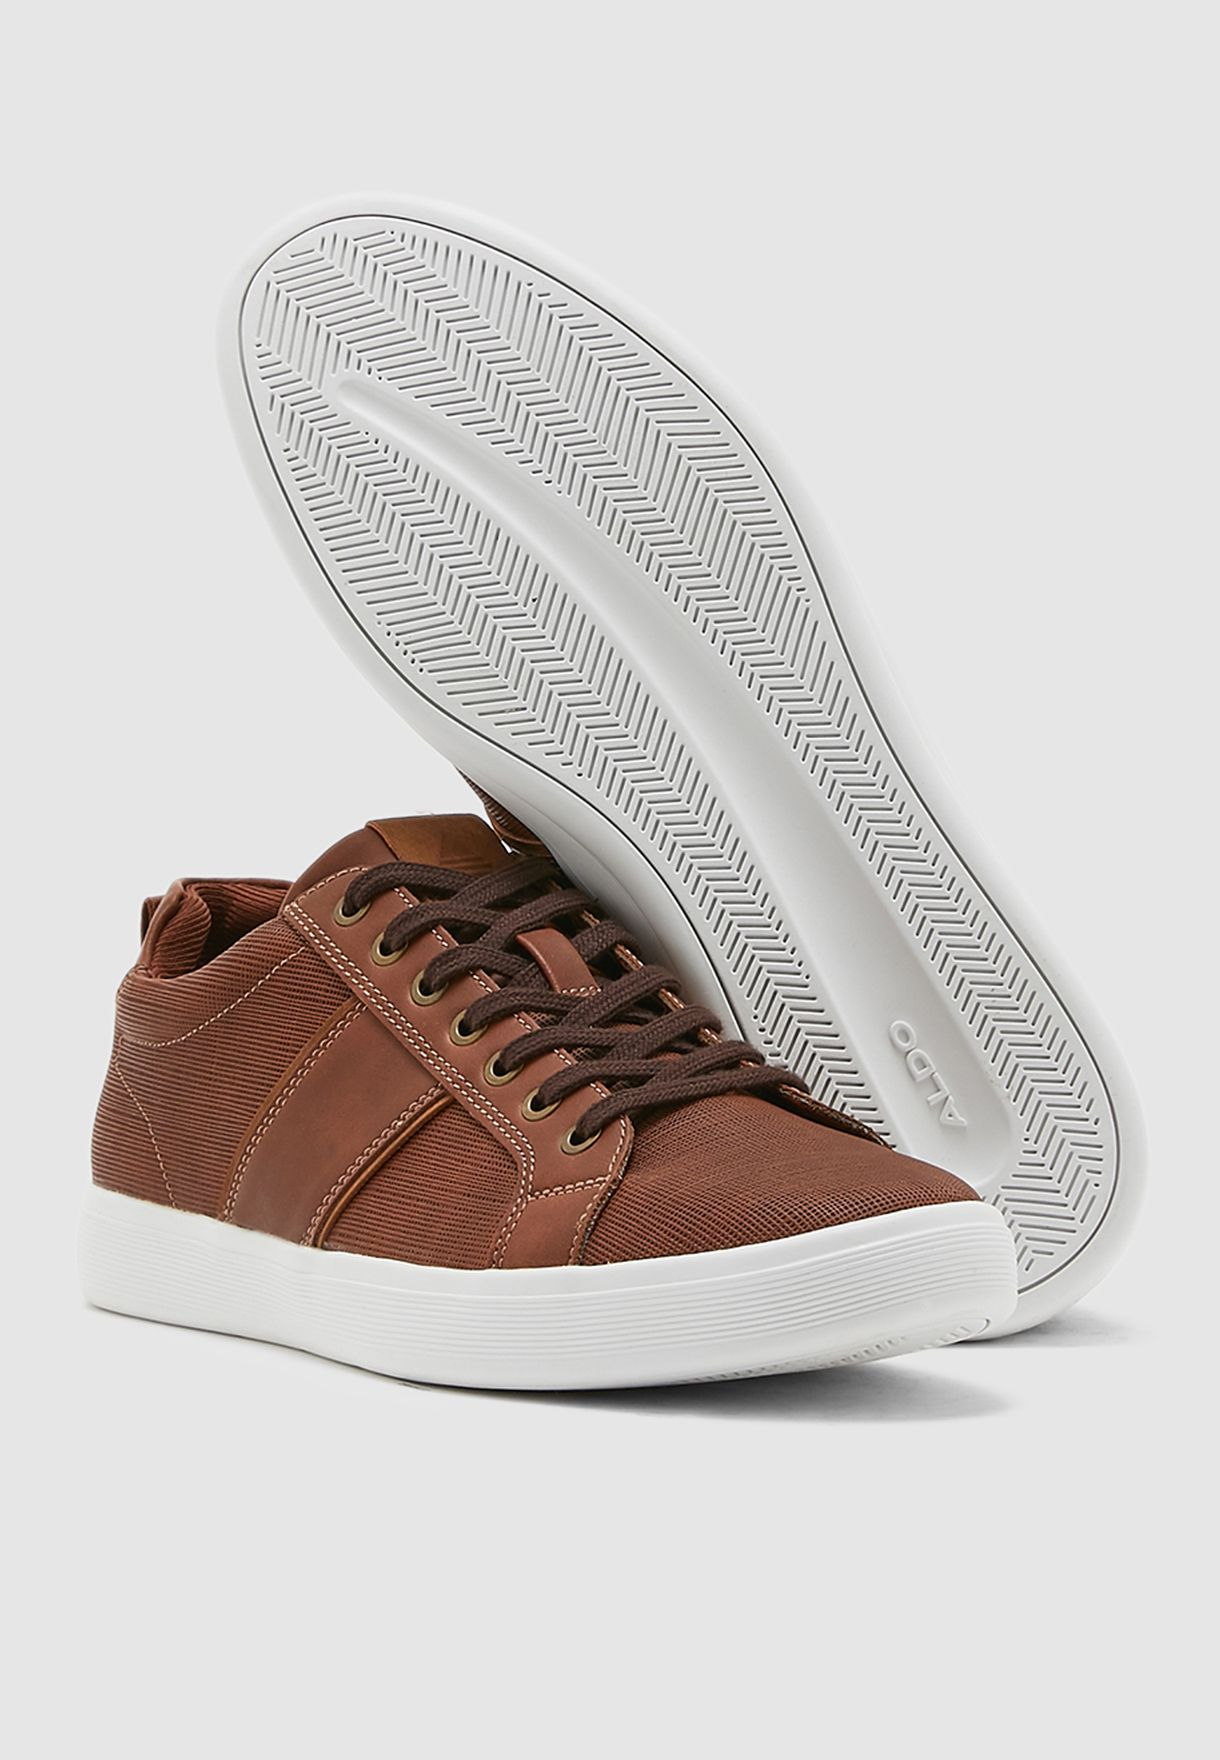 Lovericia Sneakers